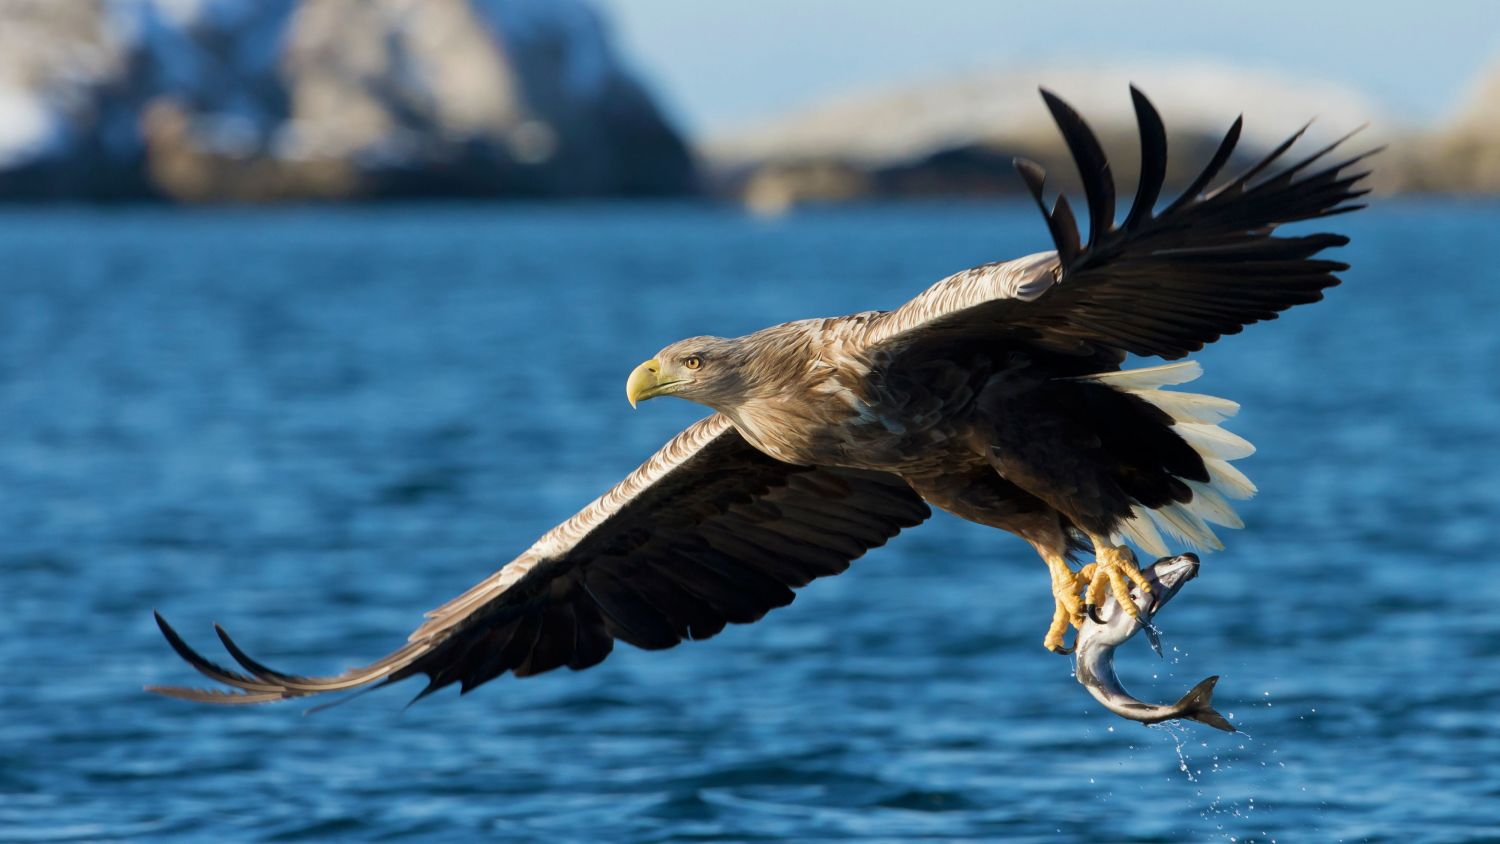 Eagle catching fish in North of Norway.